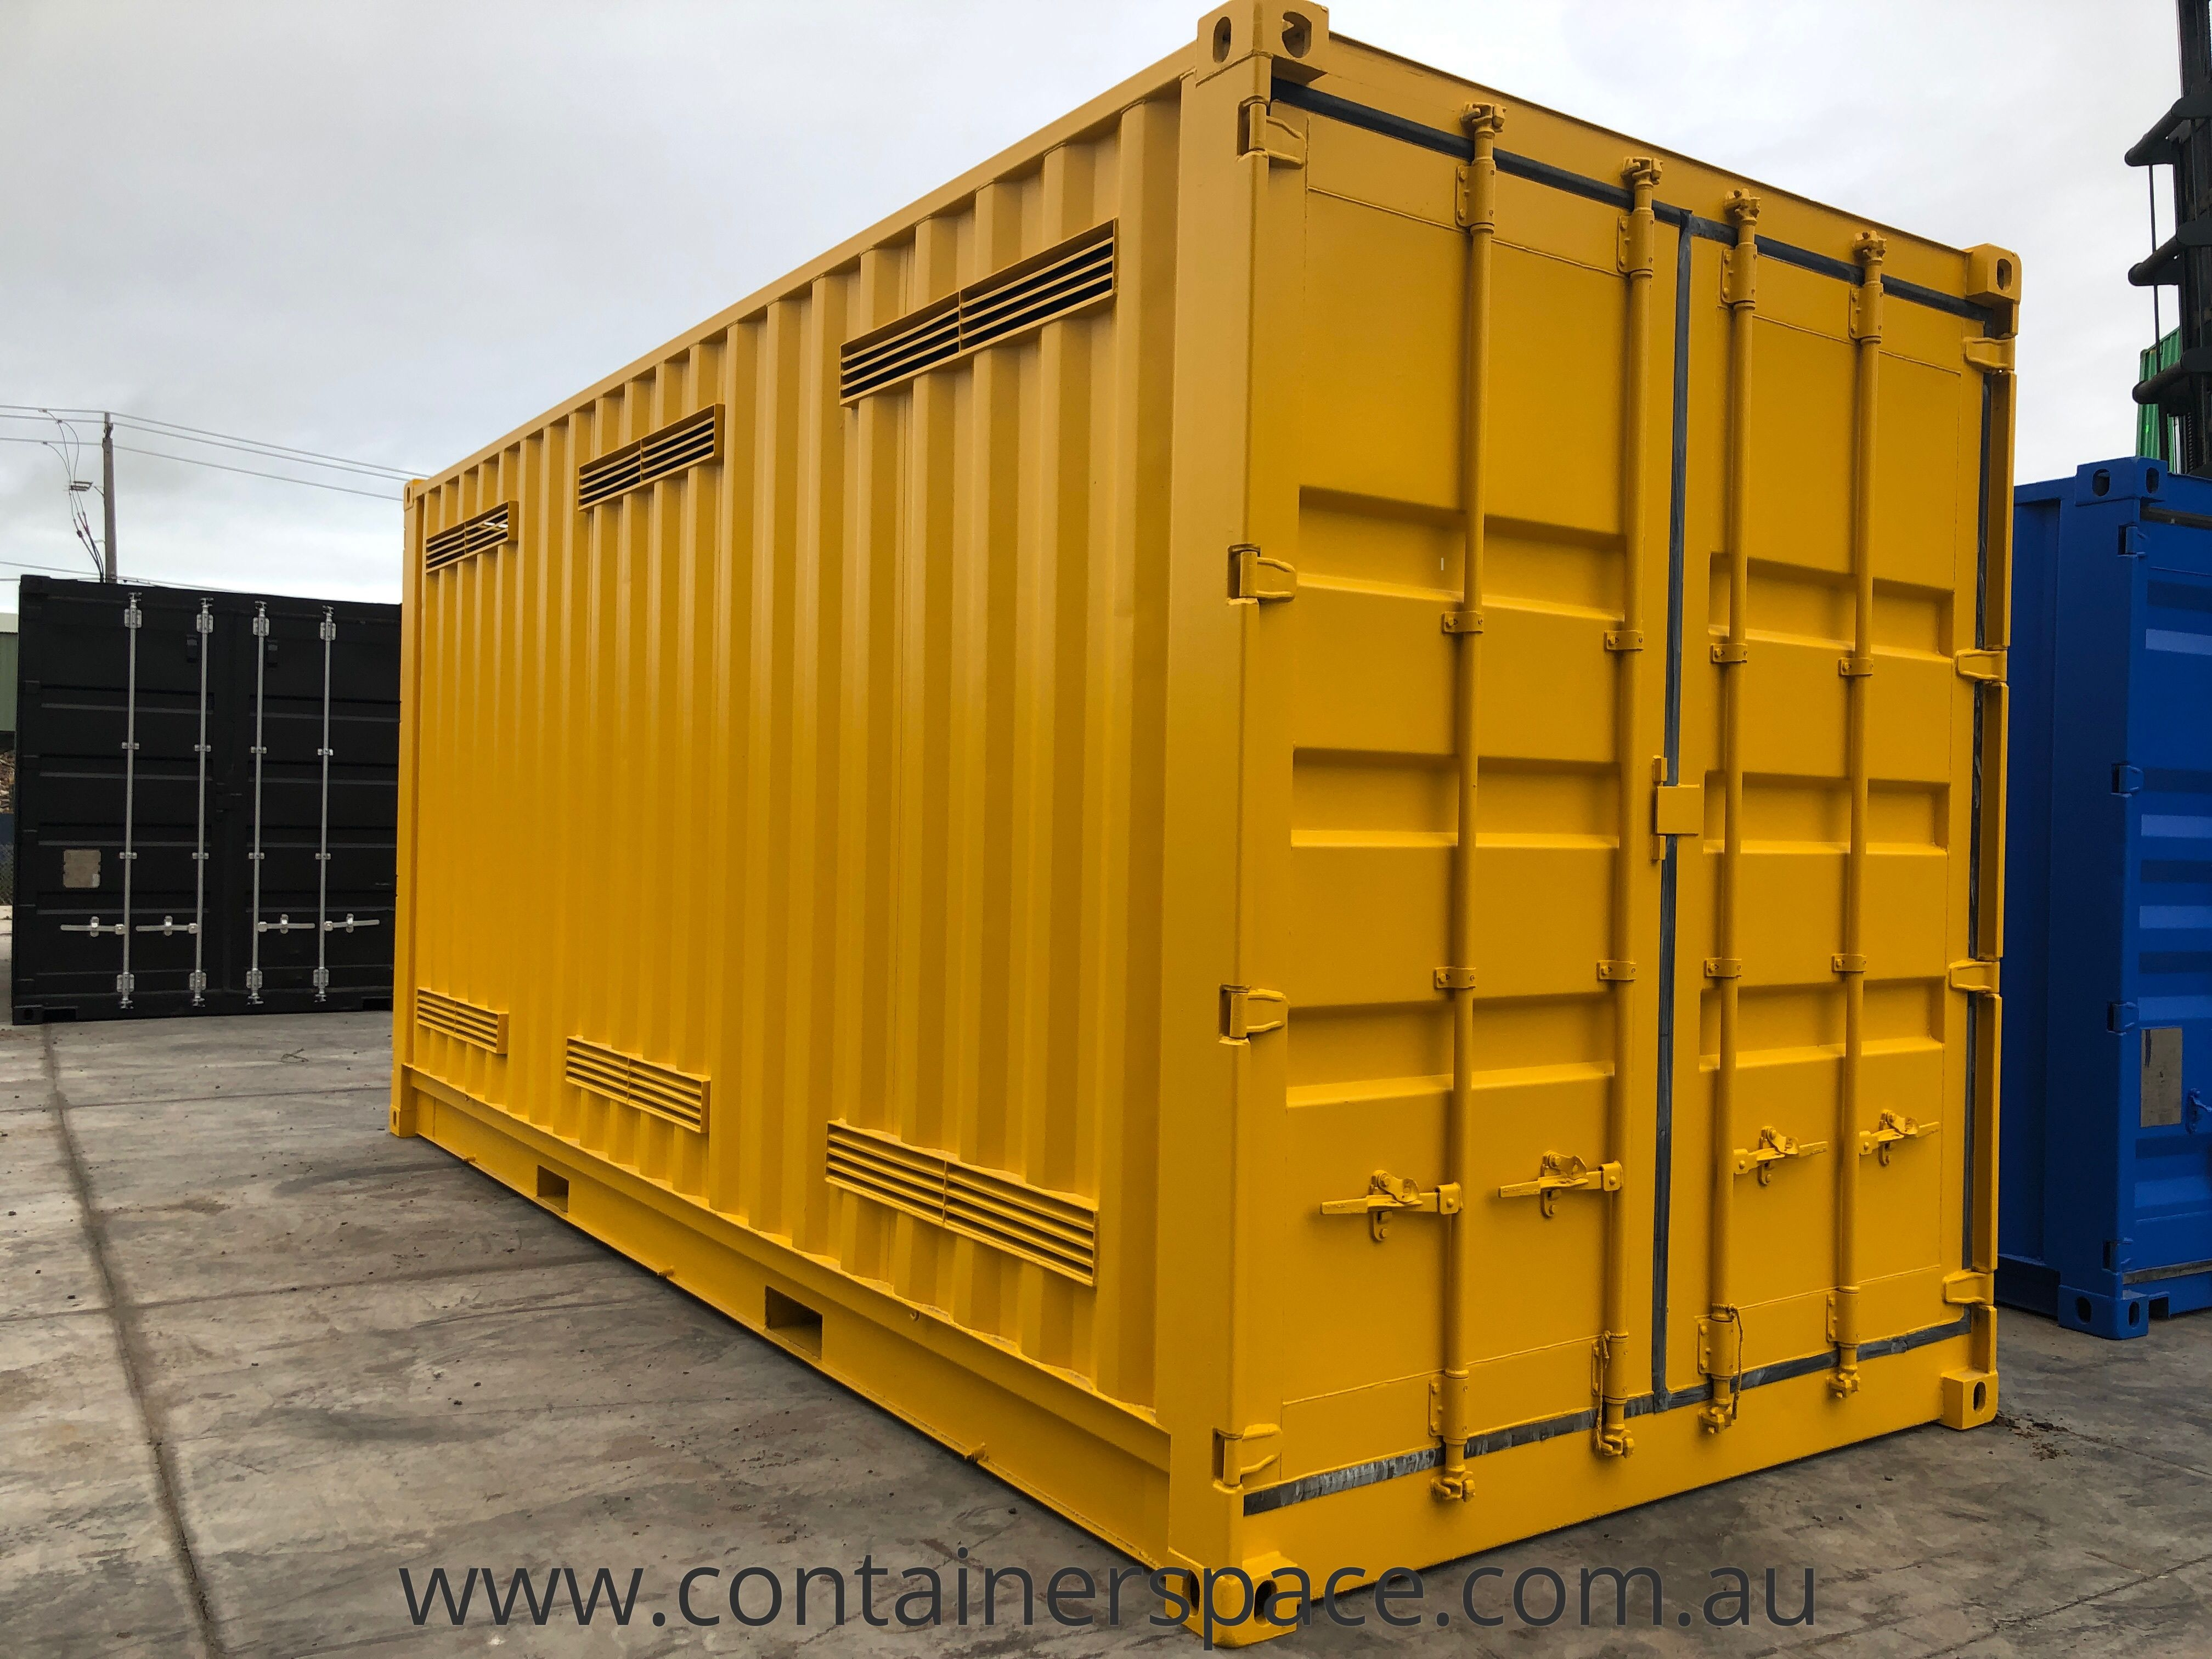 Shipping Containers For Sale In Melbourne Containerspace Containers For Sale Shipping Containers For Sale Shipping Container